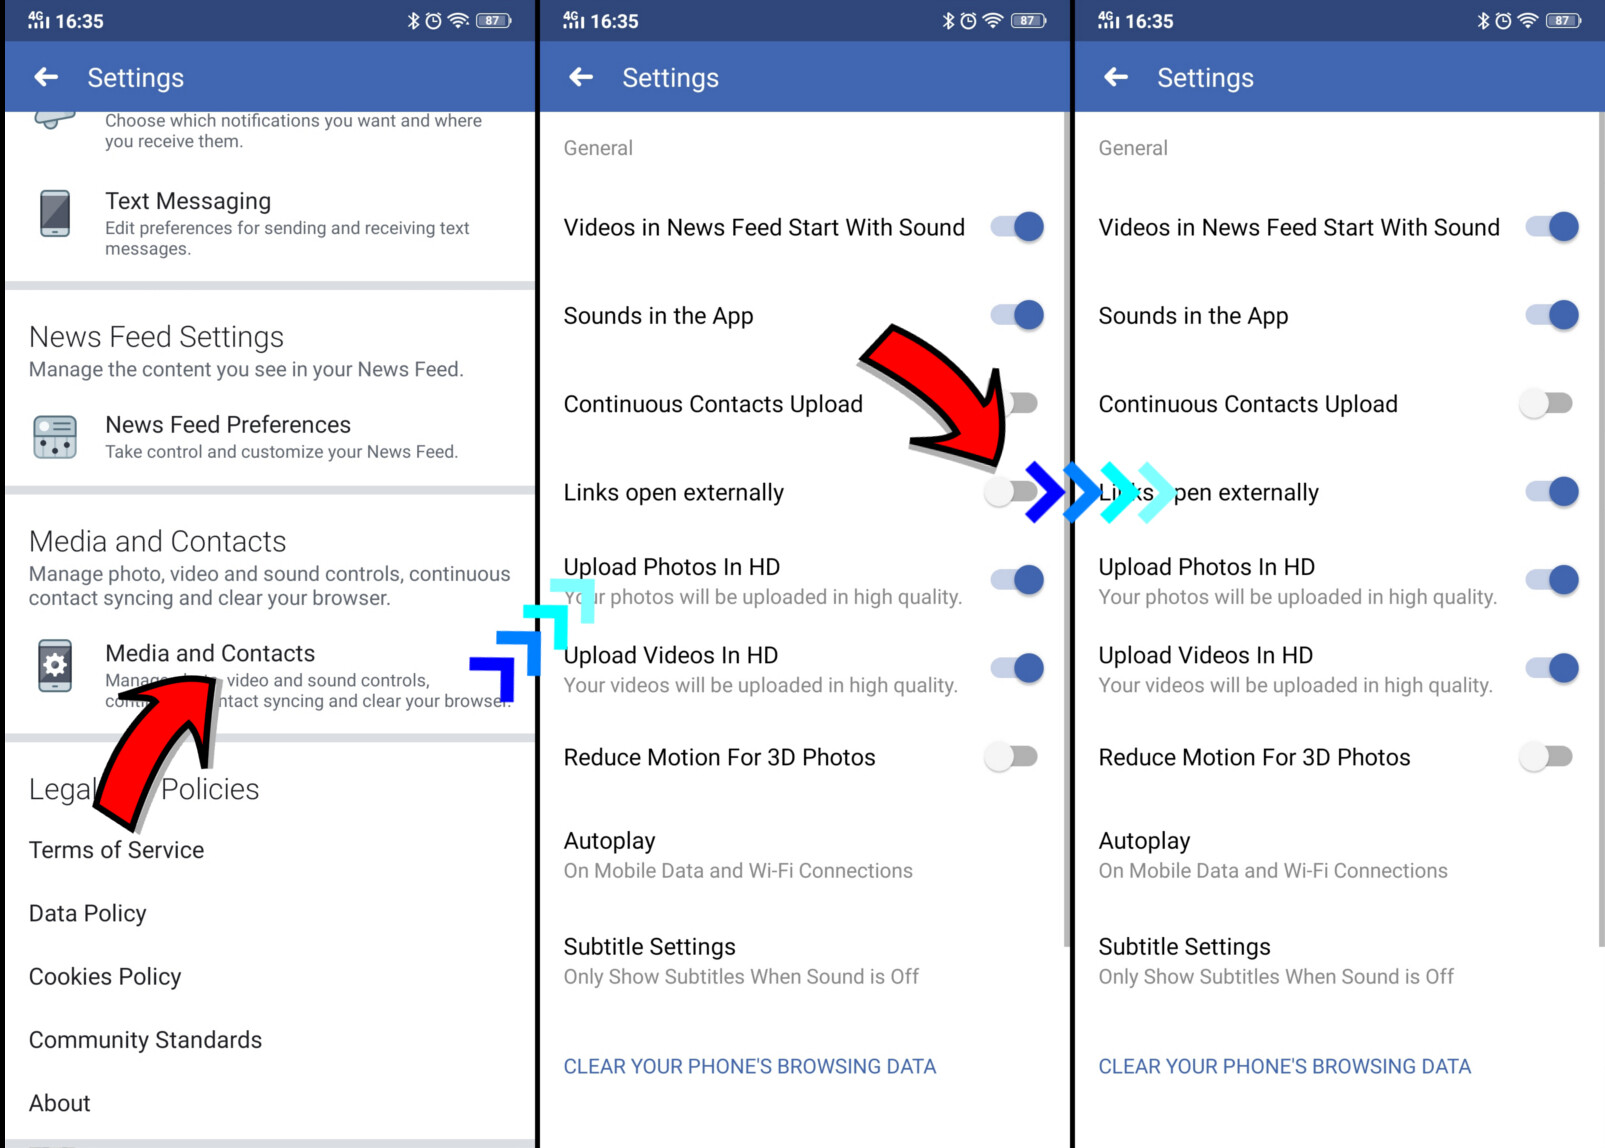 Facebook and Messenger: how to open links in external